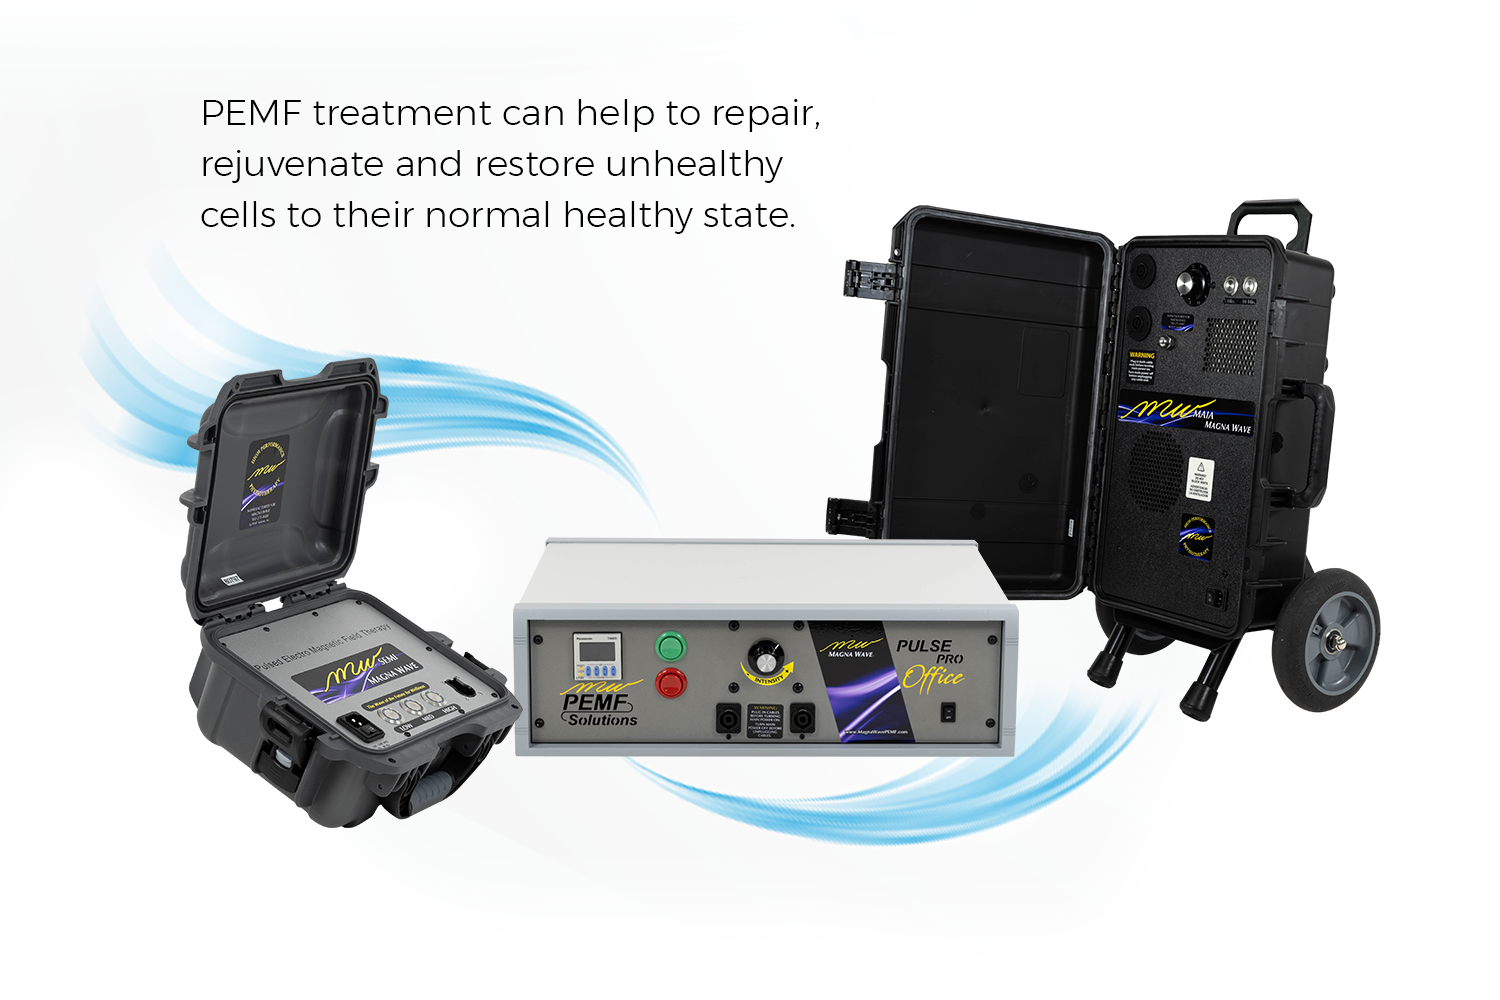 PEMF treatment can help to repair, rejuvenate and restore unhealthy cells to their normal healthy state.